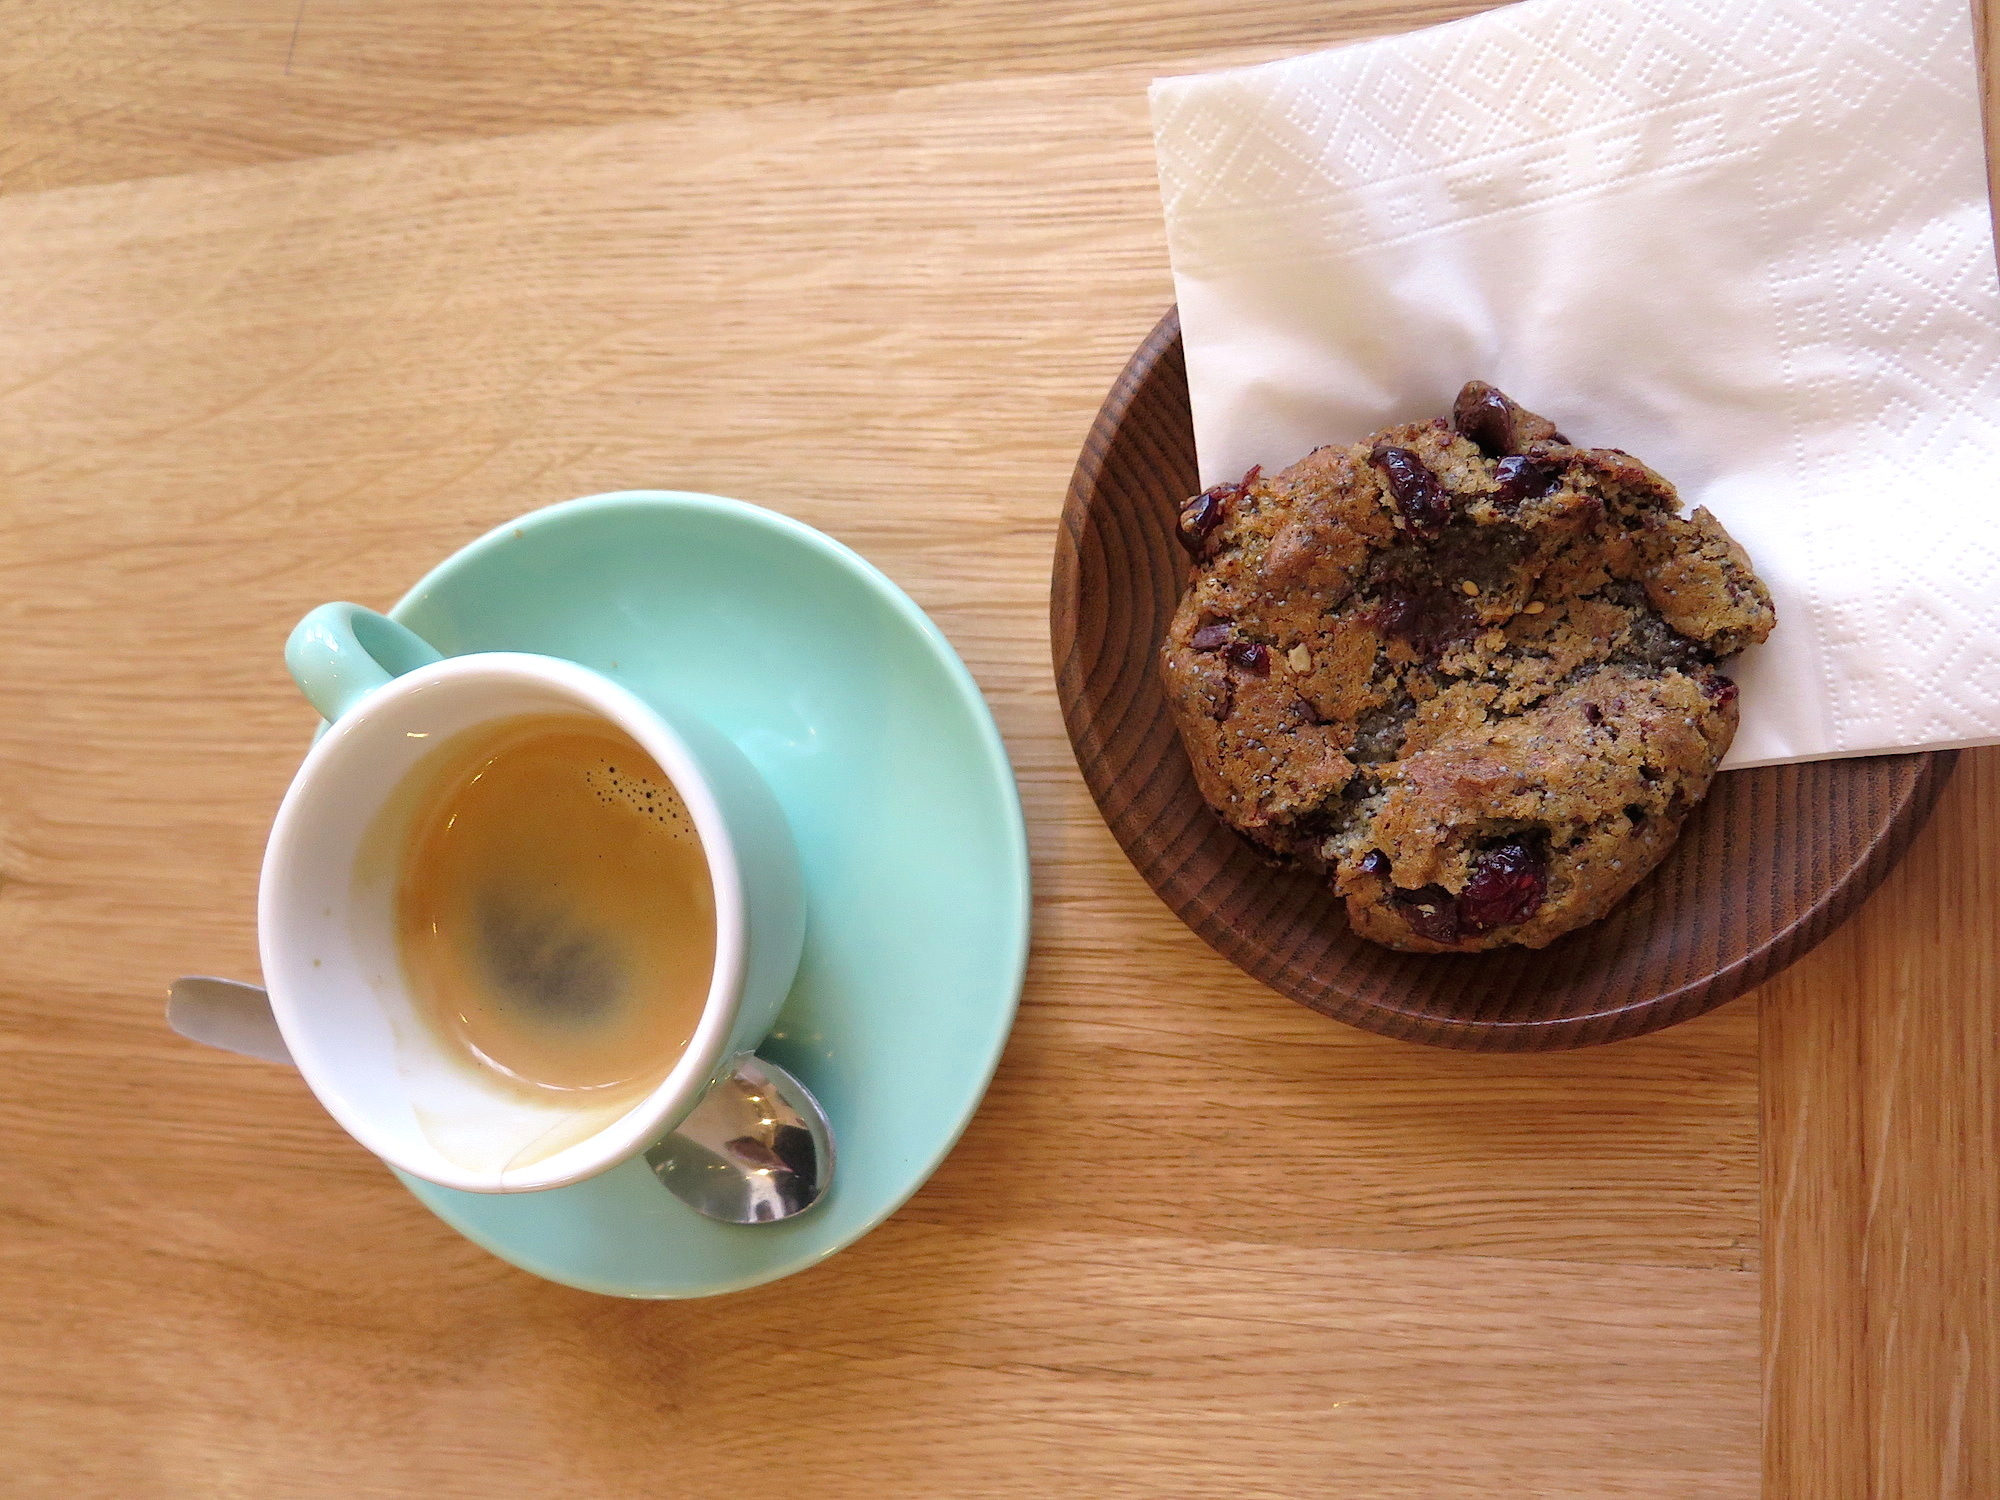 HiP Paris Blog Explores Mokonuts Bakery & Café